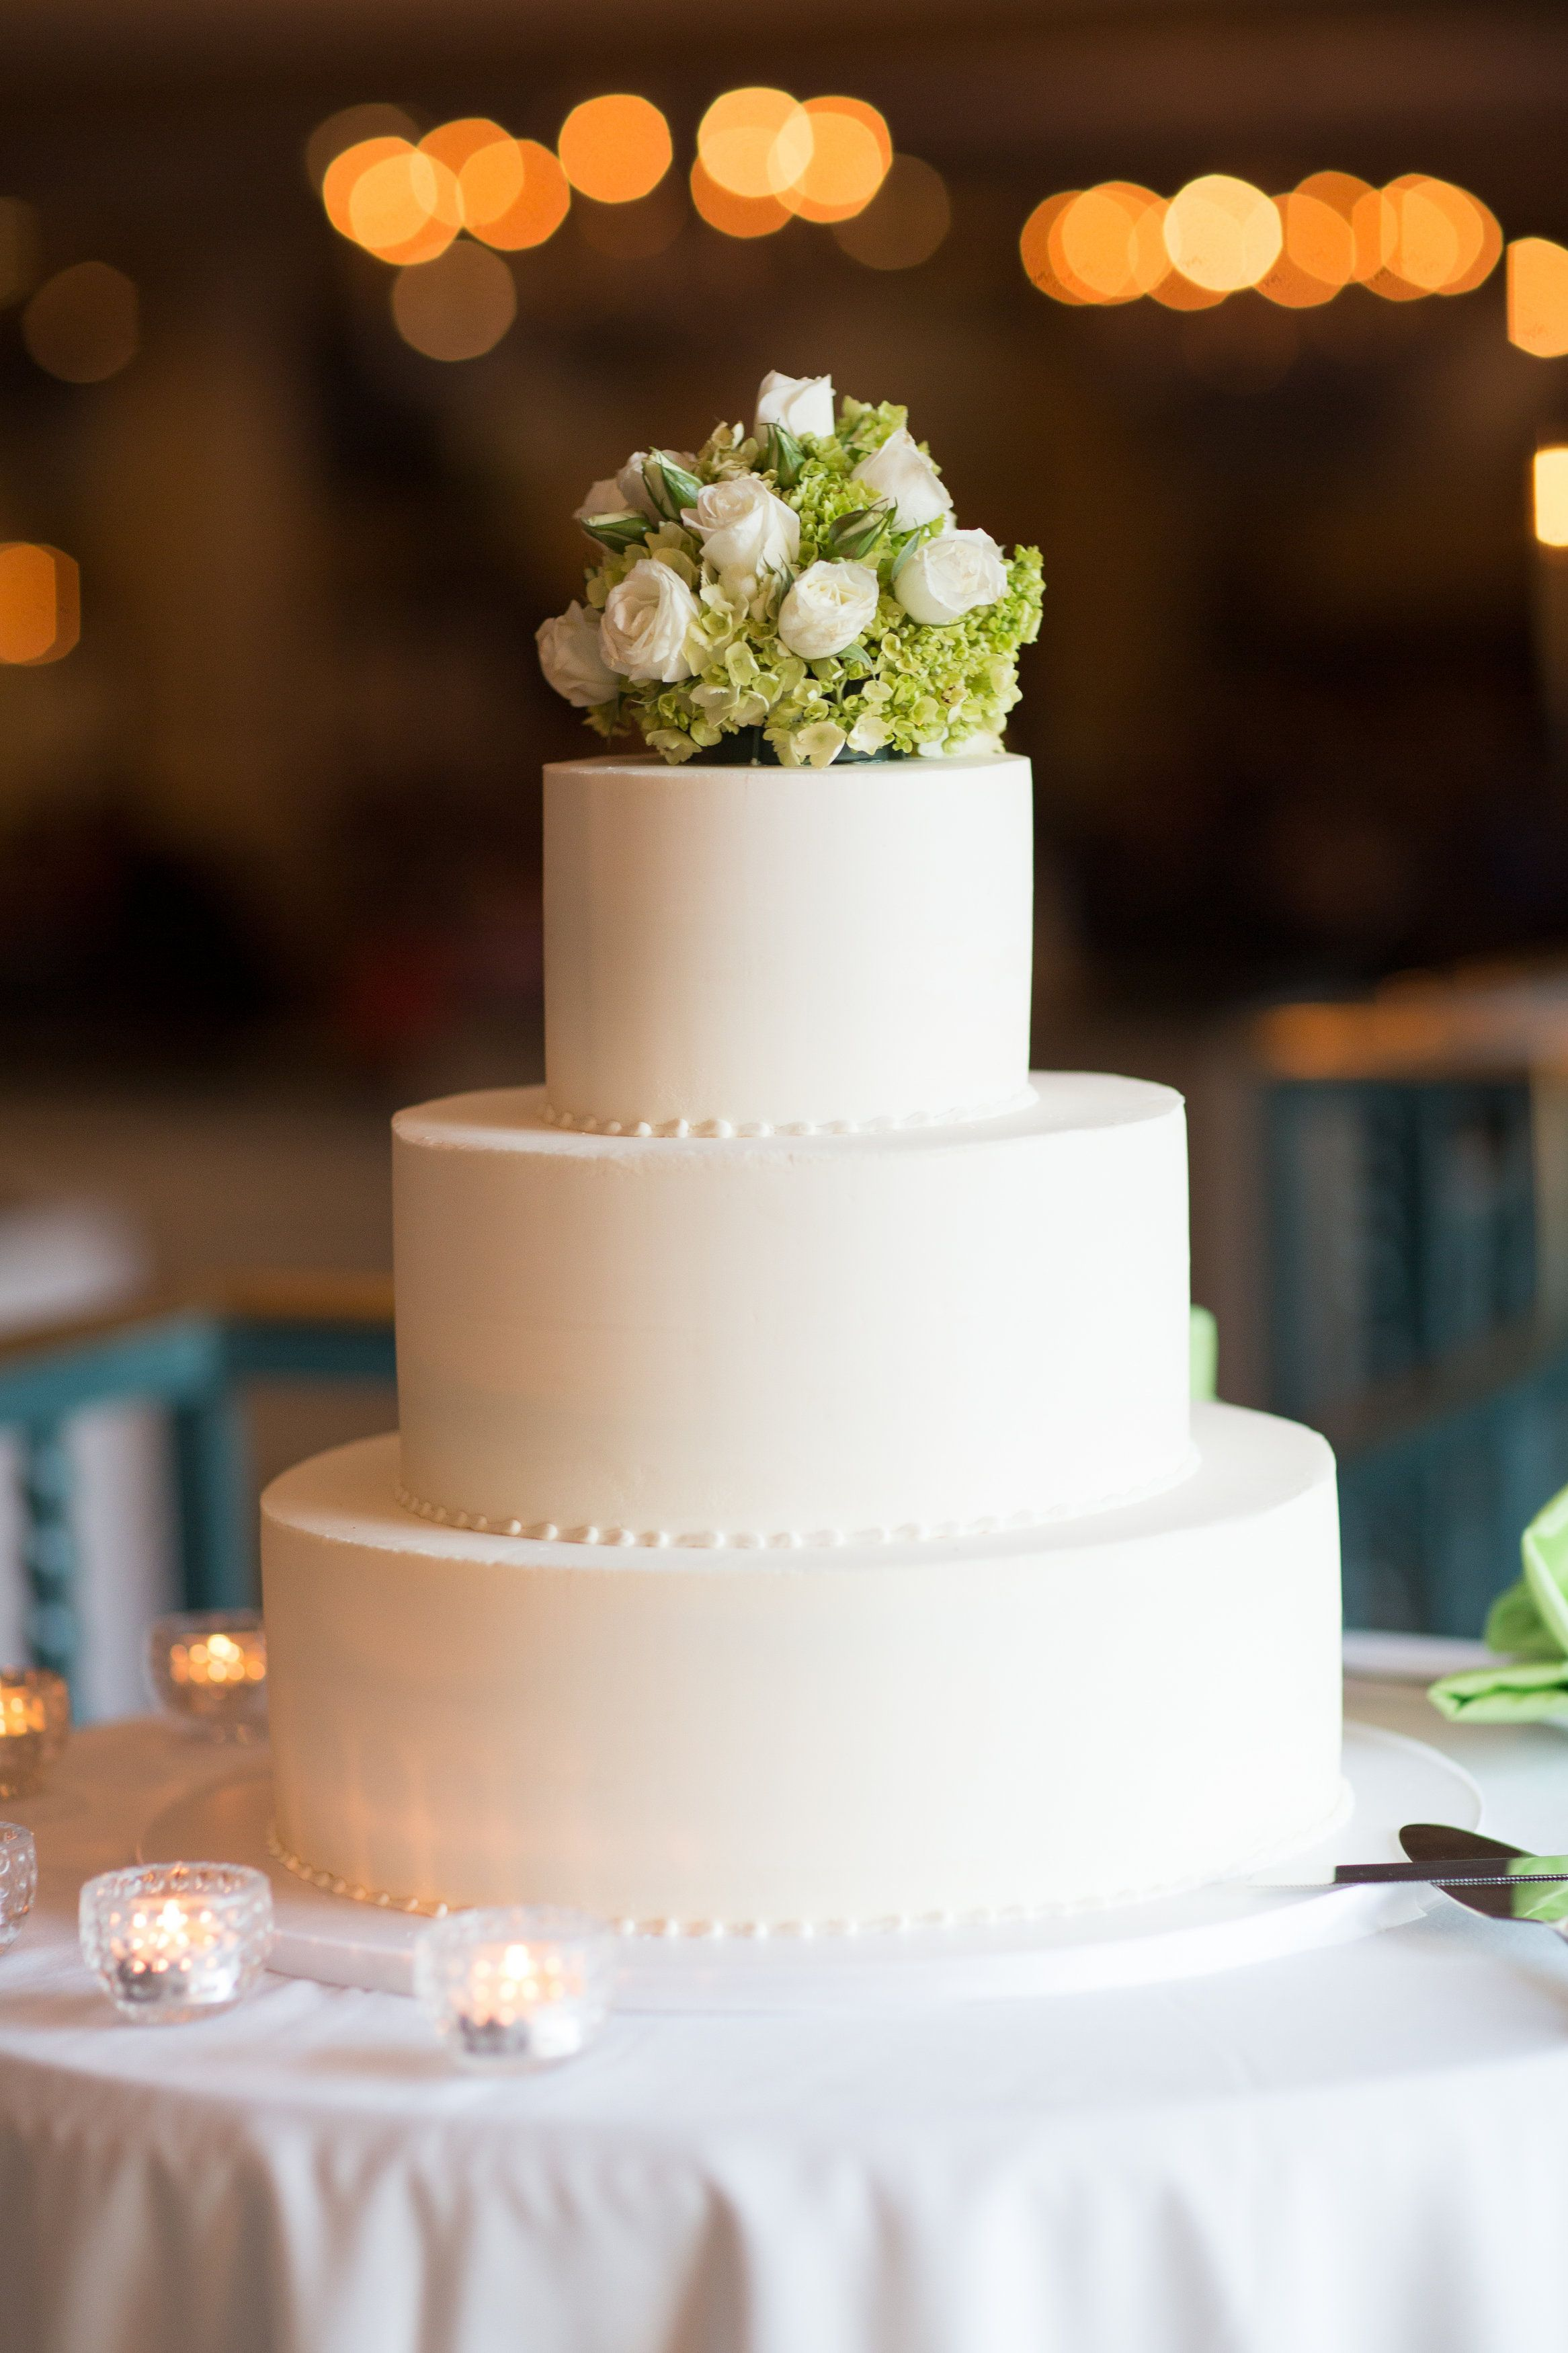 shabby chic bridal shower cakes%0A Simple white wedding cake  White butter cream wedding cake  Lime green  floral topper